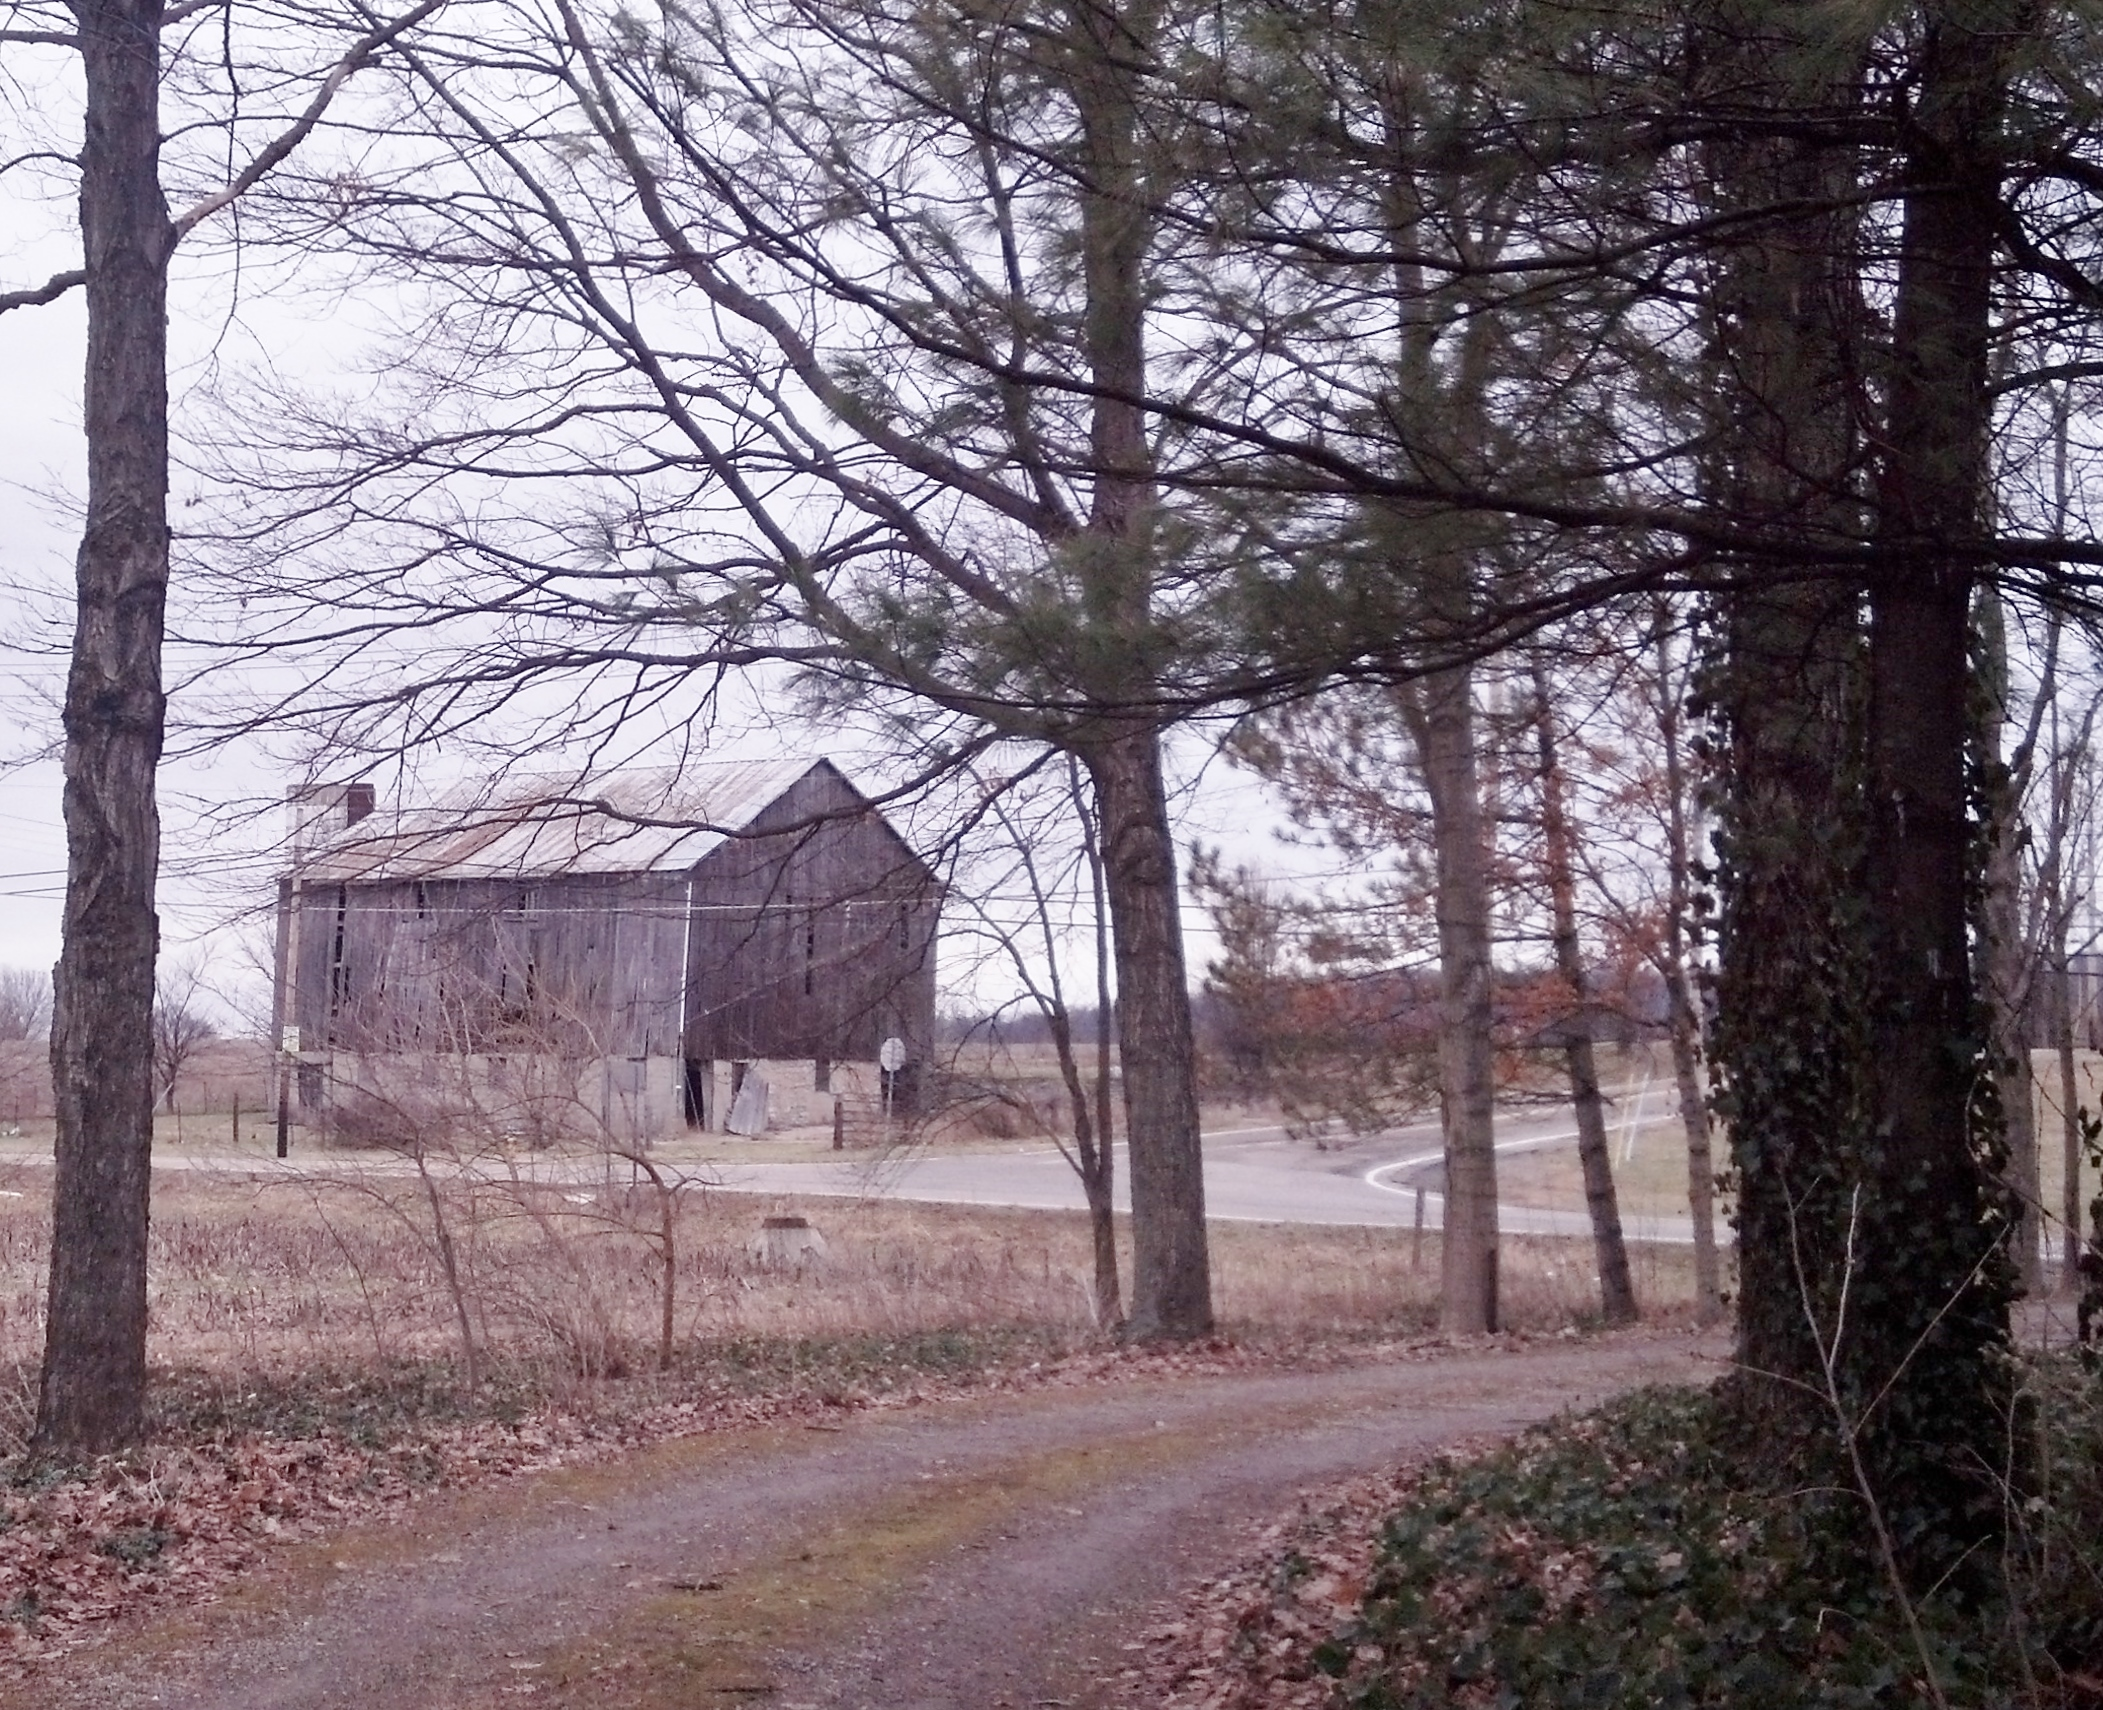 The original barn (no longer part of the same property).